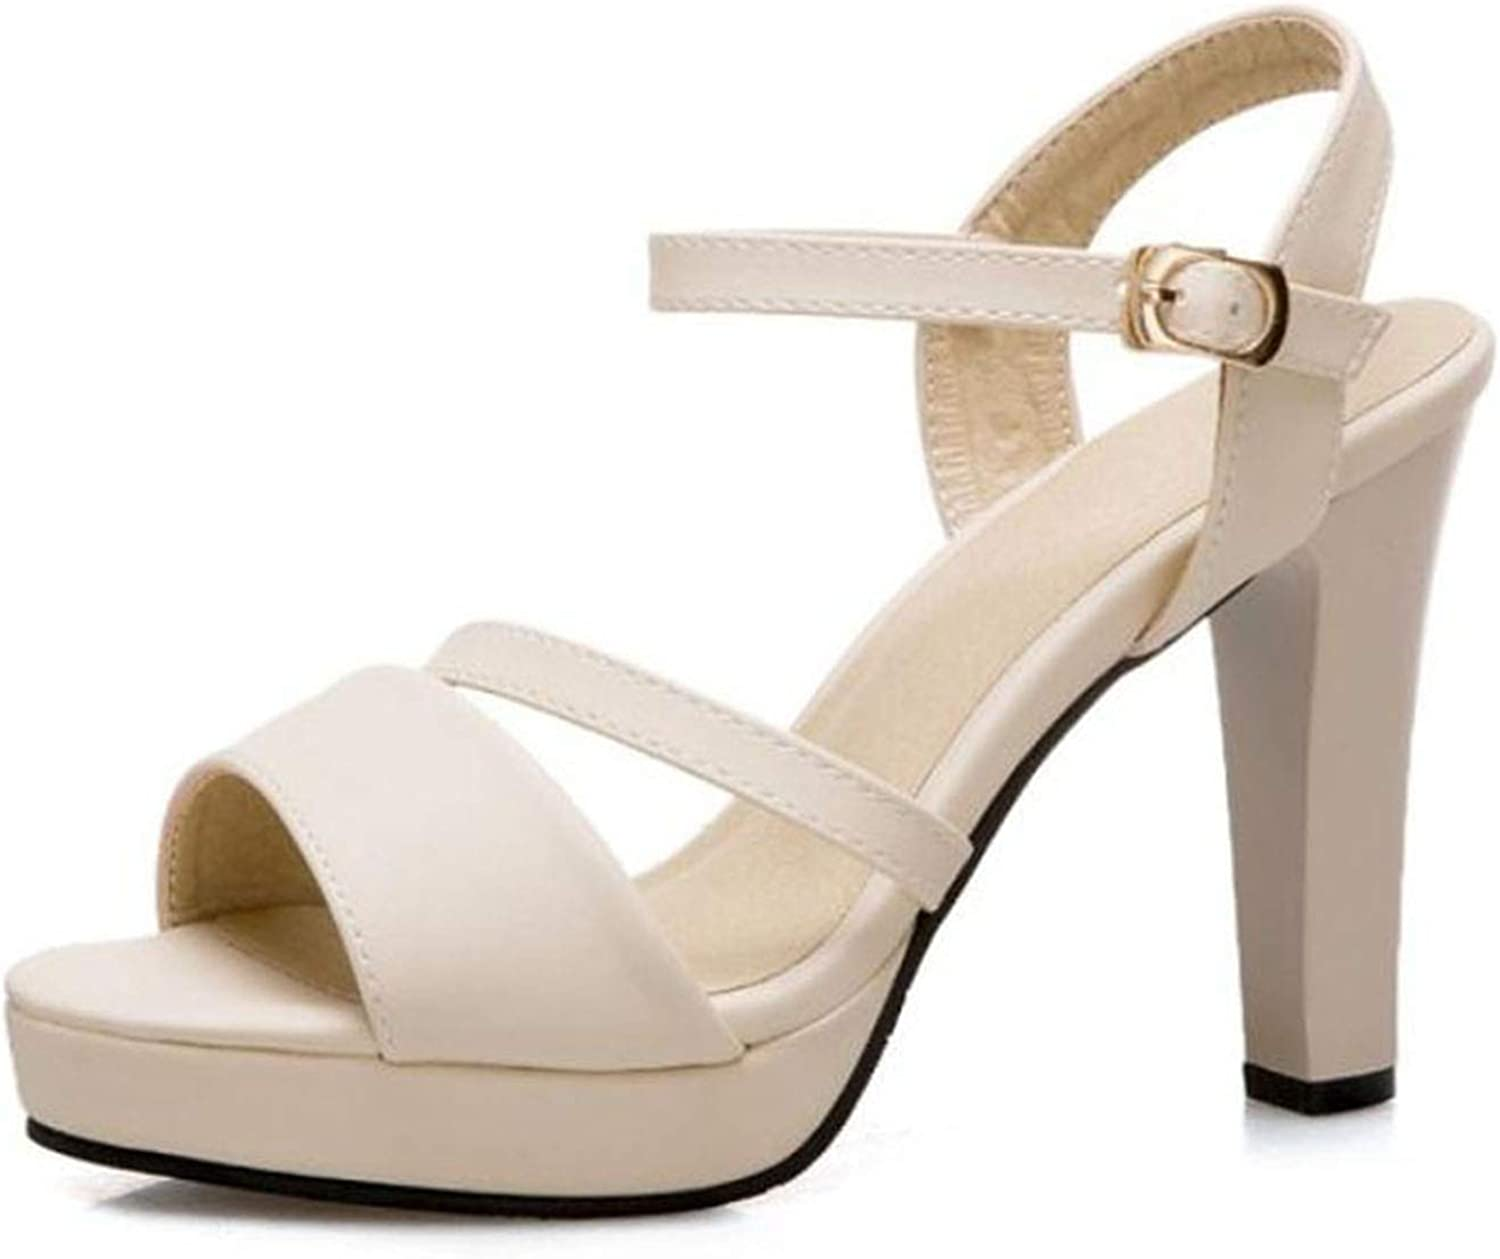 Women High Heel Sandals Classic Open Toe Ankle Strap Sweet Sandals Party shoes Women